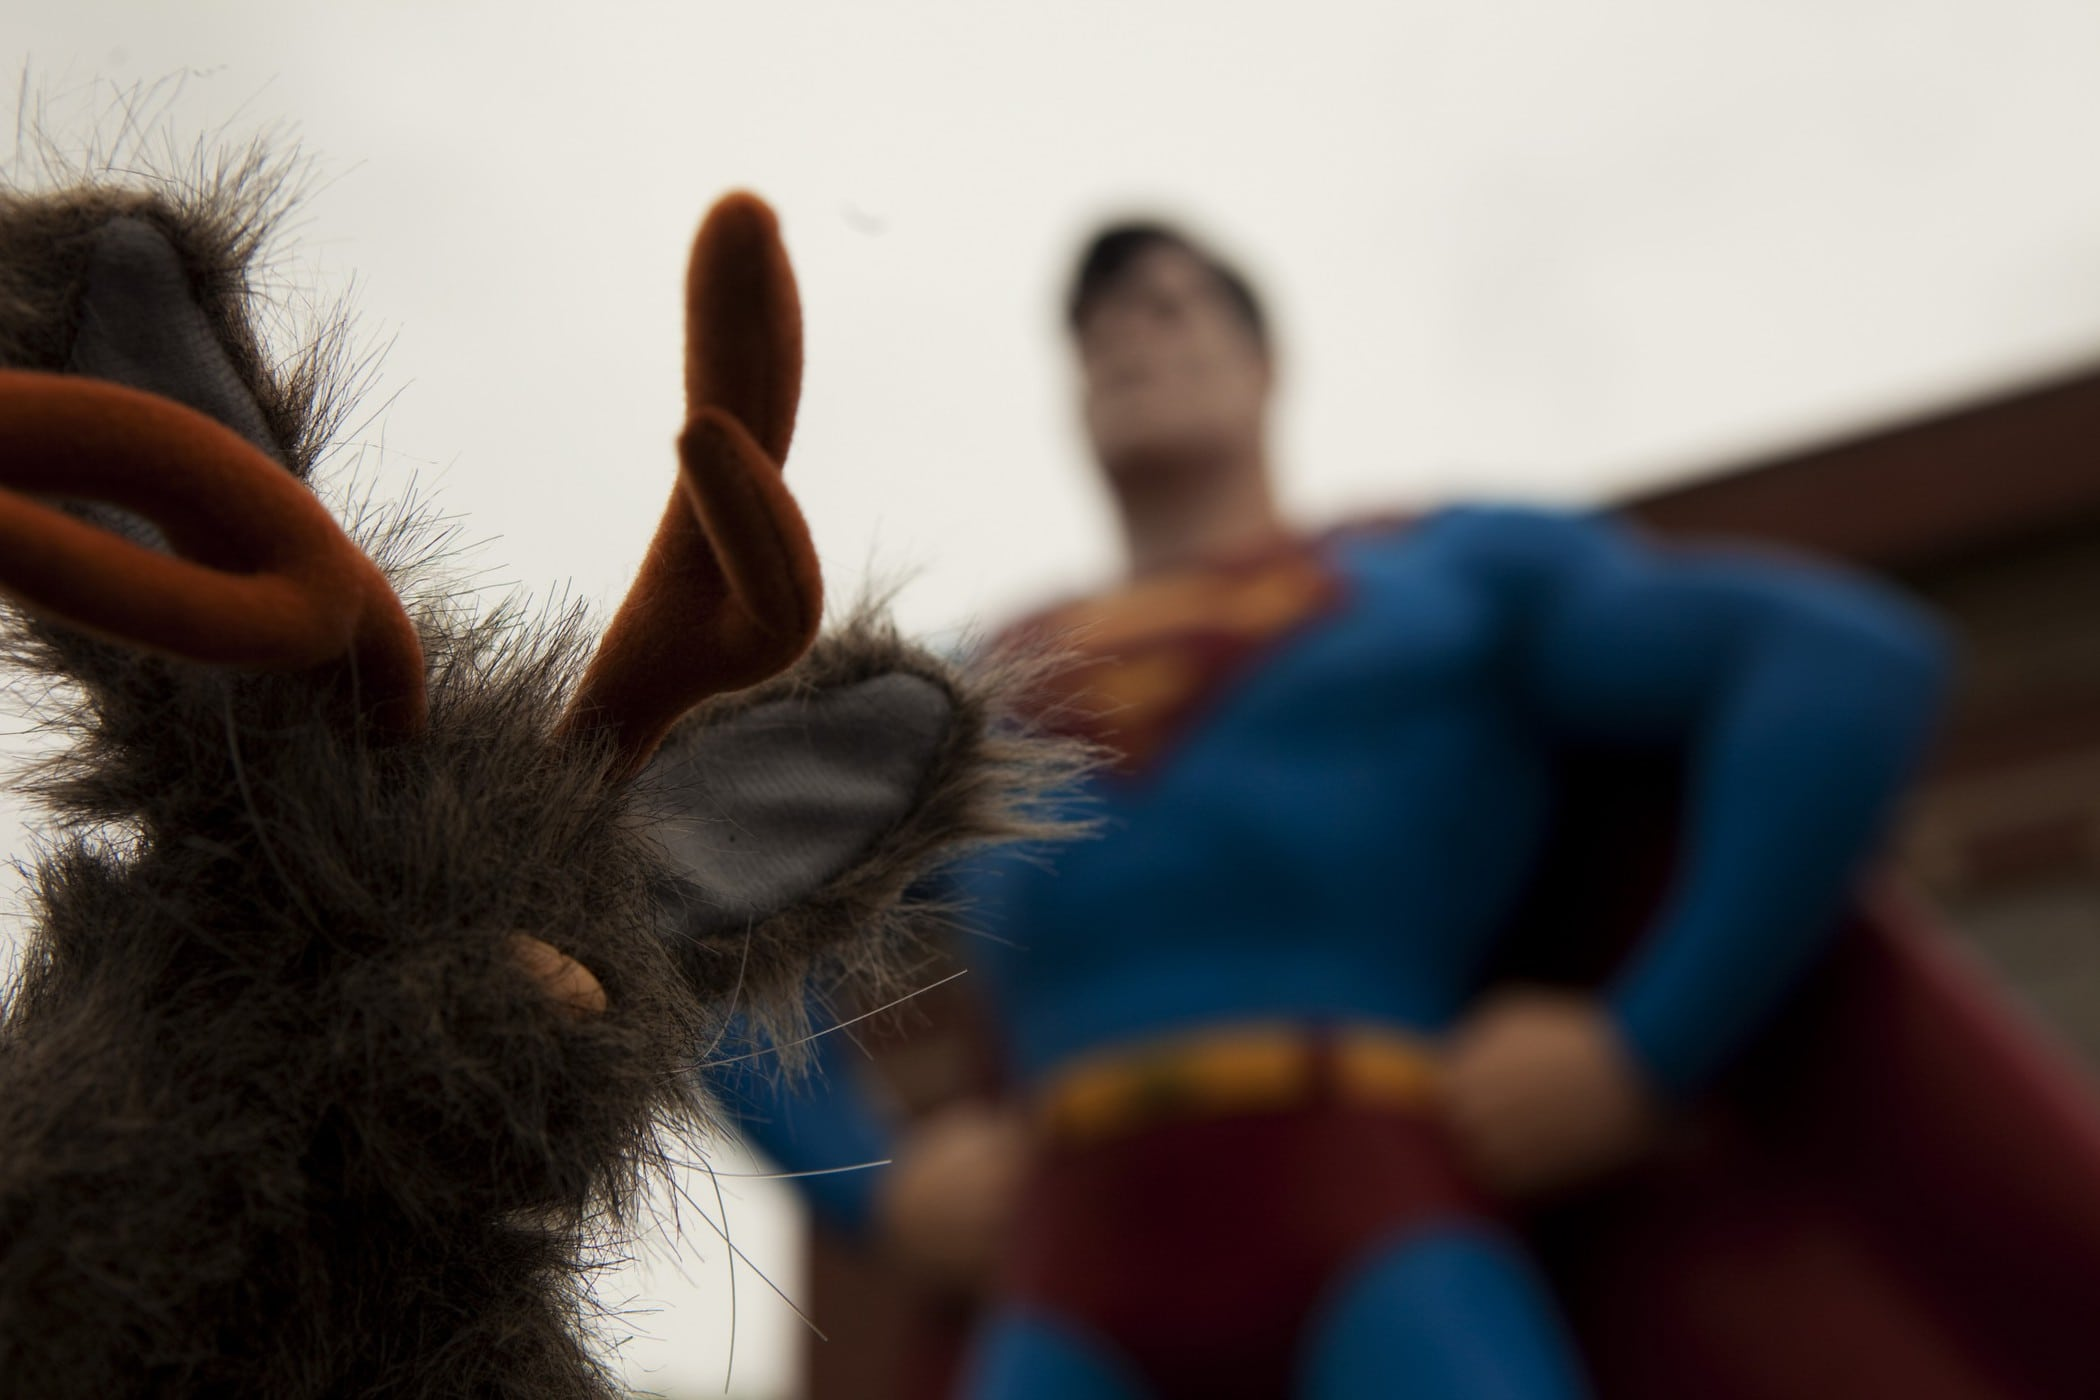 Flopsy the Jackalope with the Giant Superman statue, a roadside attraction in Metropolis, Illinois.